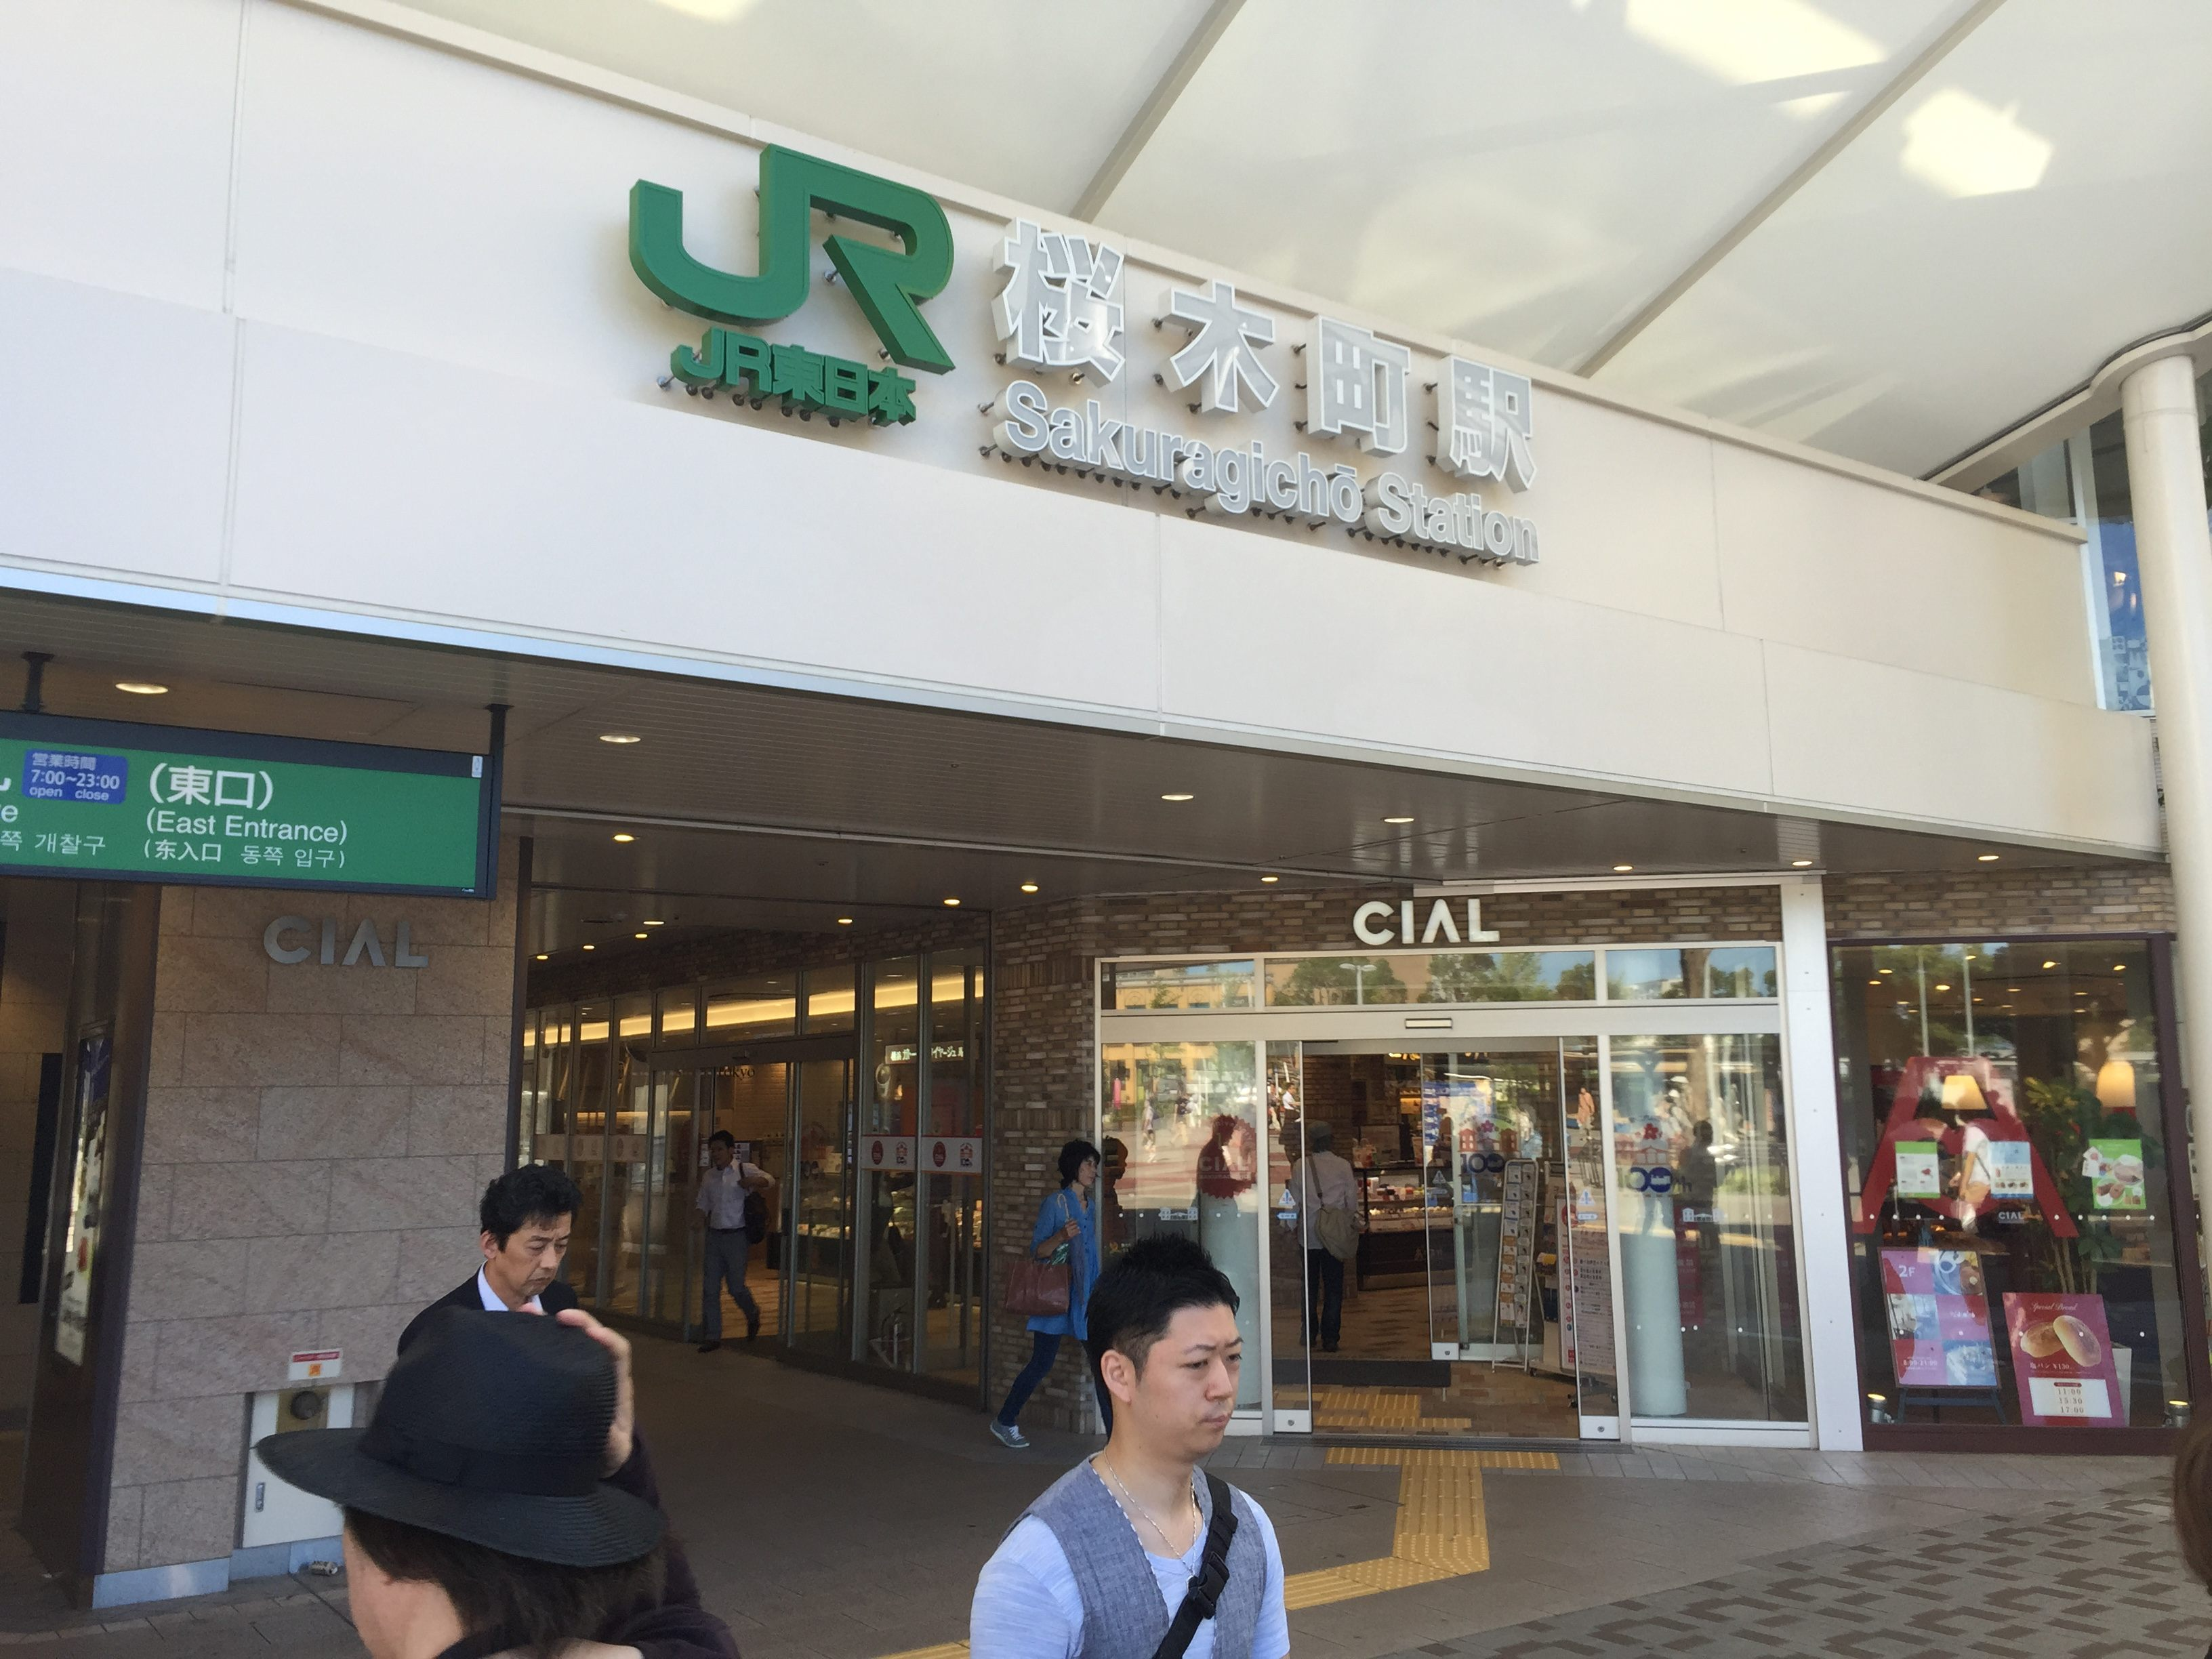 JR Rail Pass - Sakuragicho Station